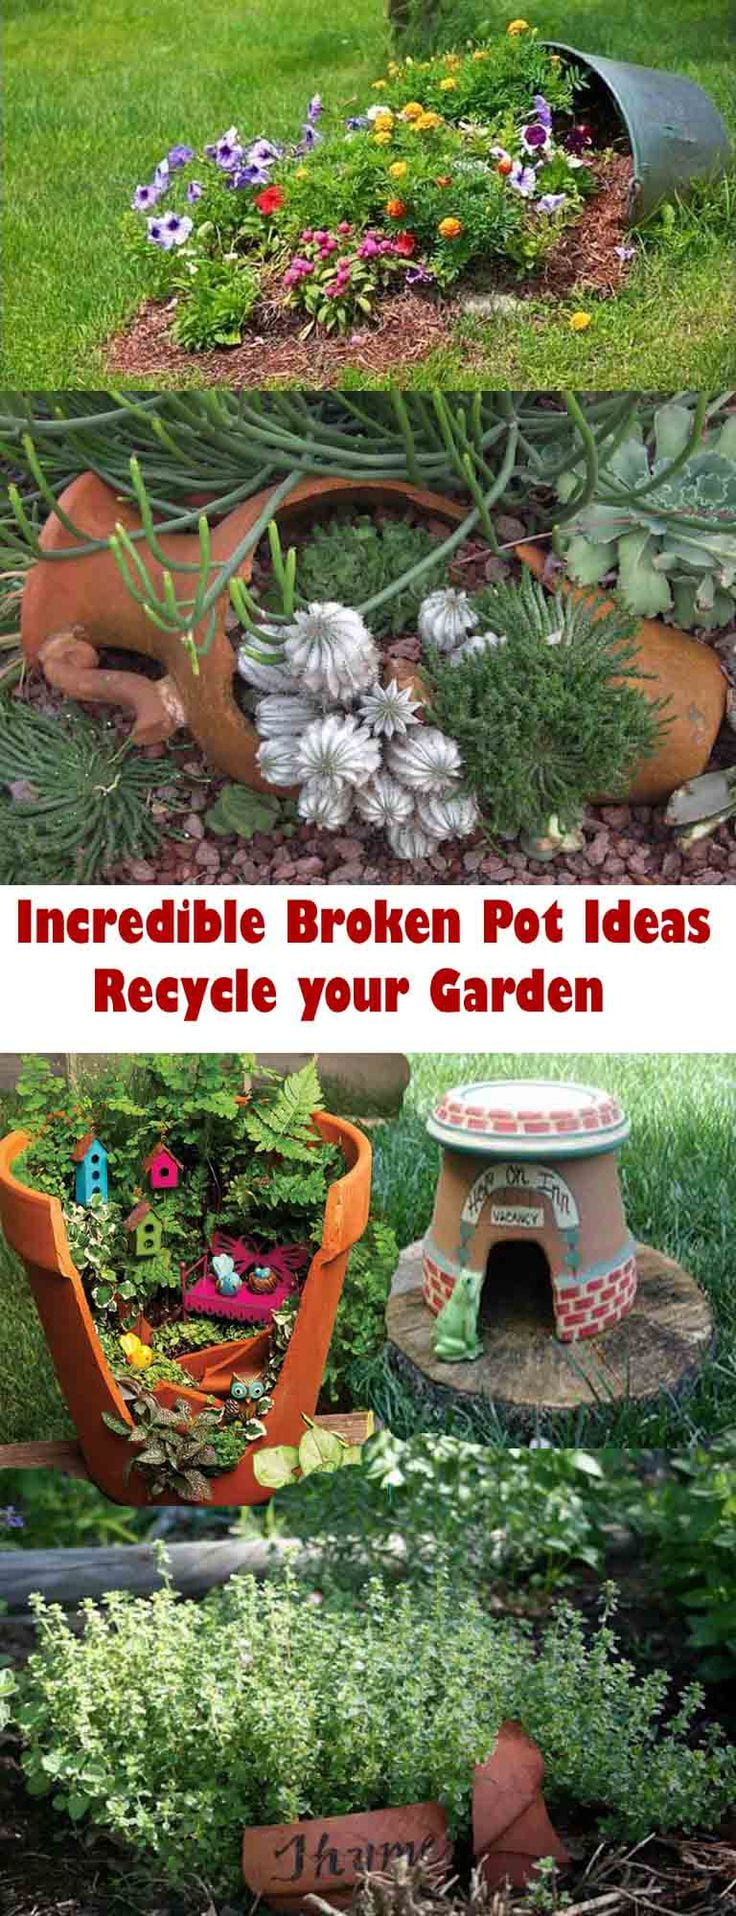 Simphome.com incredible broken pot ideas recycle your garden pertaining to 10 recycle ideas for garden incredible as well as attractive